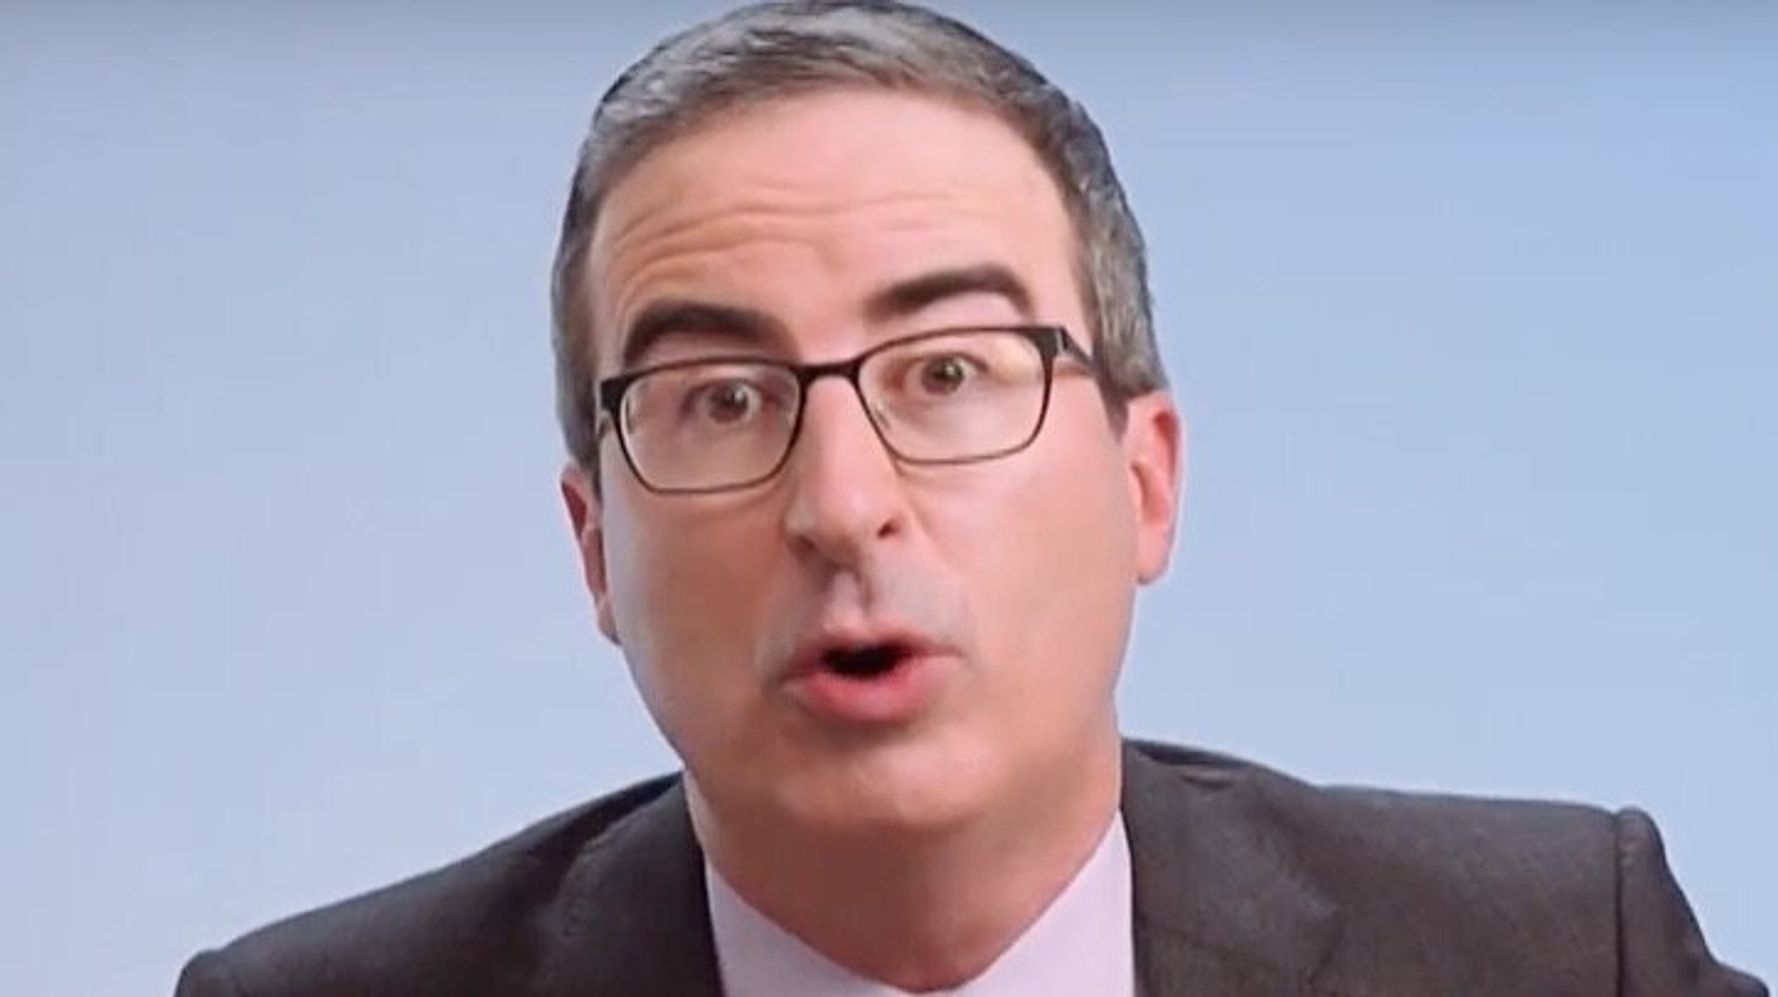 John Oliver Delivers Damning Indictment Of Trump Just Hours Before Election